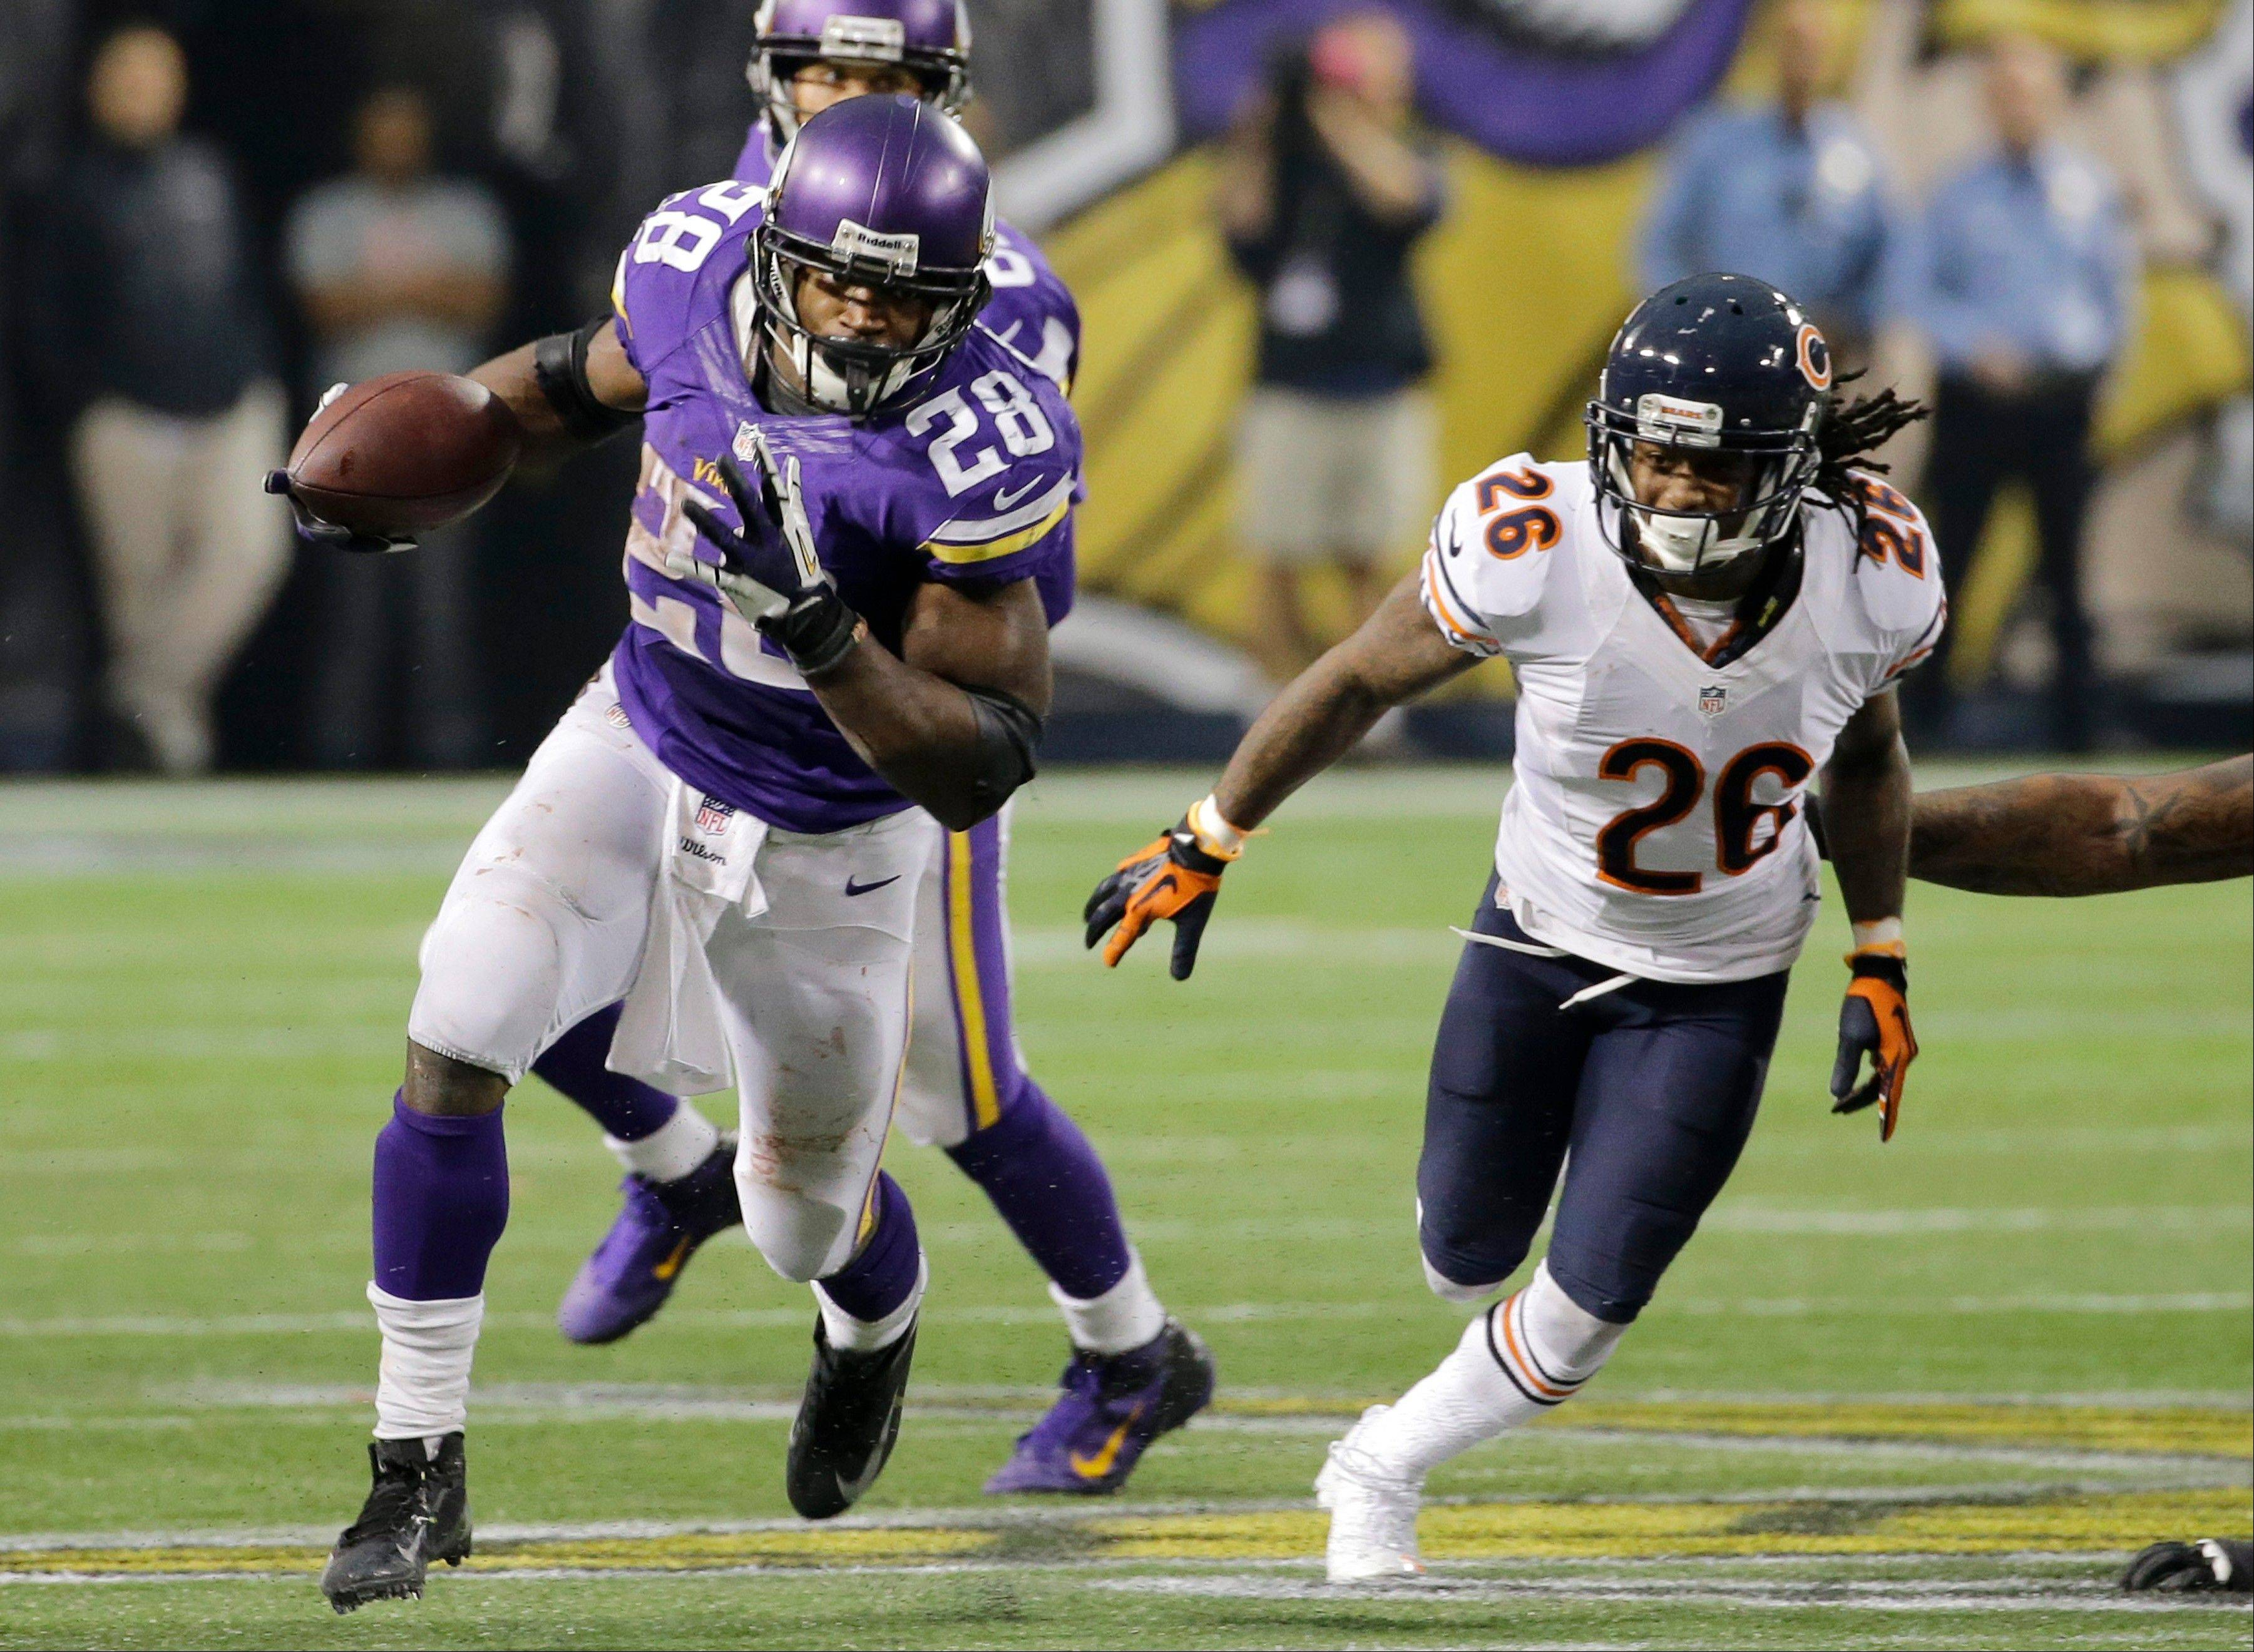 Minnesota Vikings running back Adrian Peterson (28) runs from Bears cornerback Tim Jennings during overtime of an NFL football game on Sunday, Dec. 1, 2013, in Minneapolis. The Vikings won 23-20.